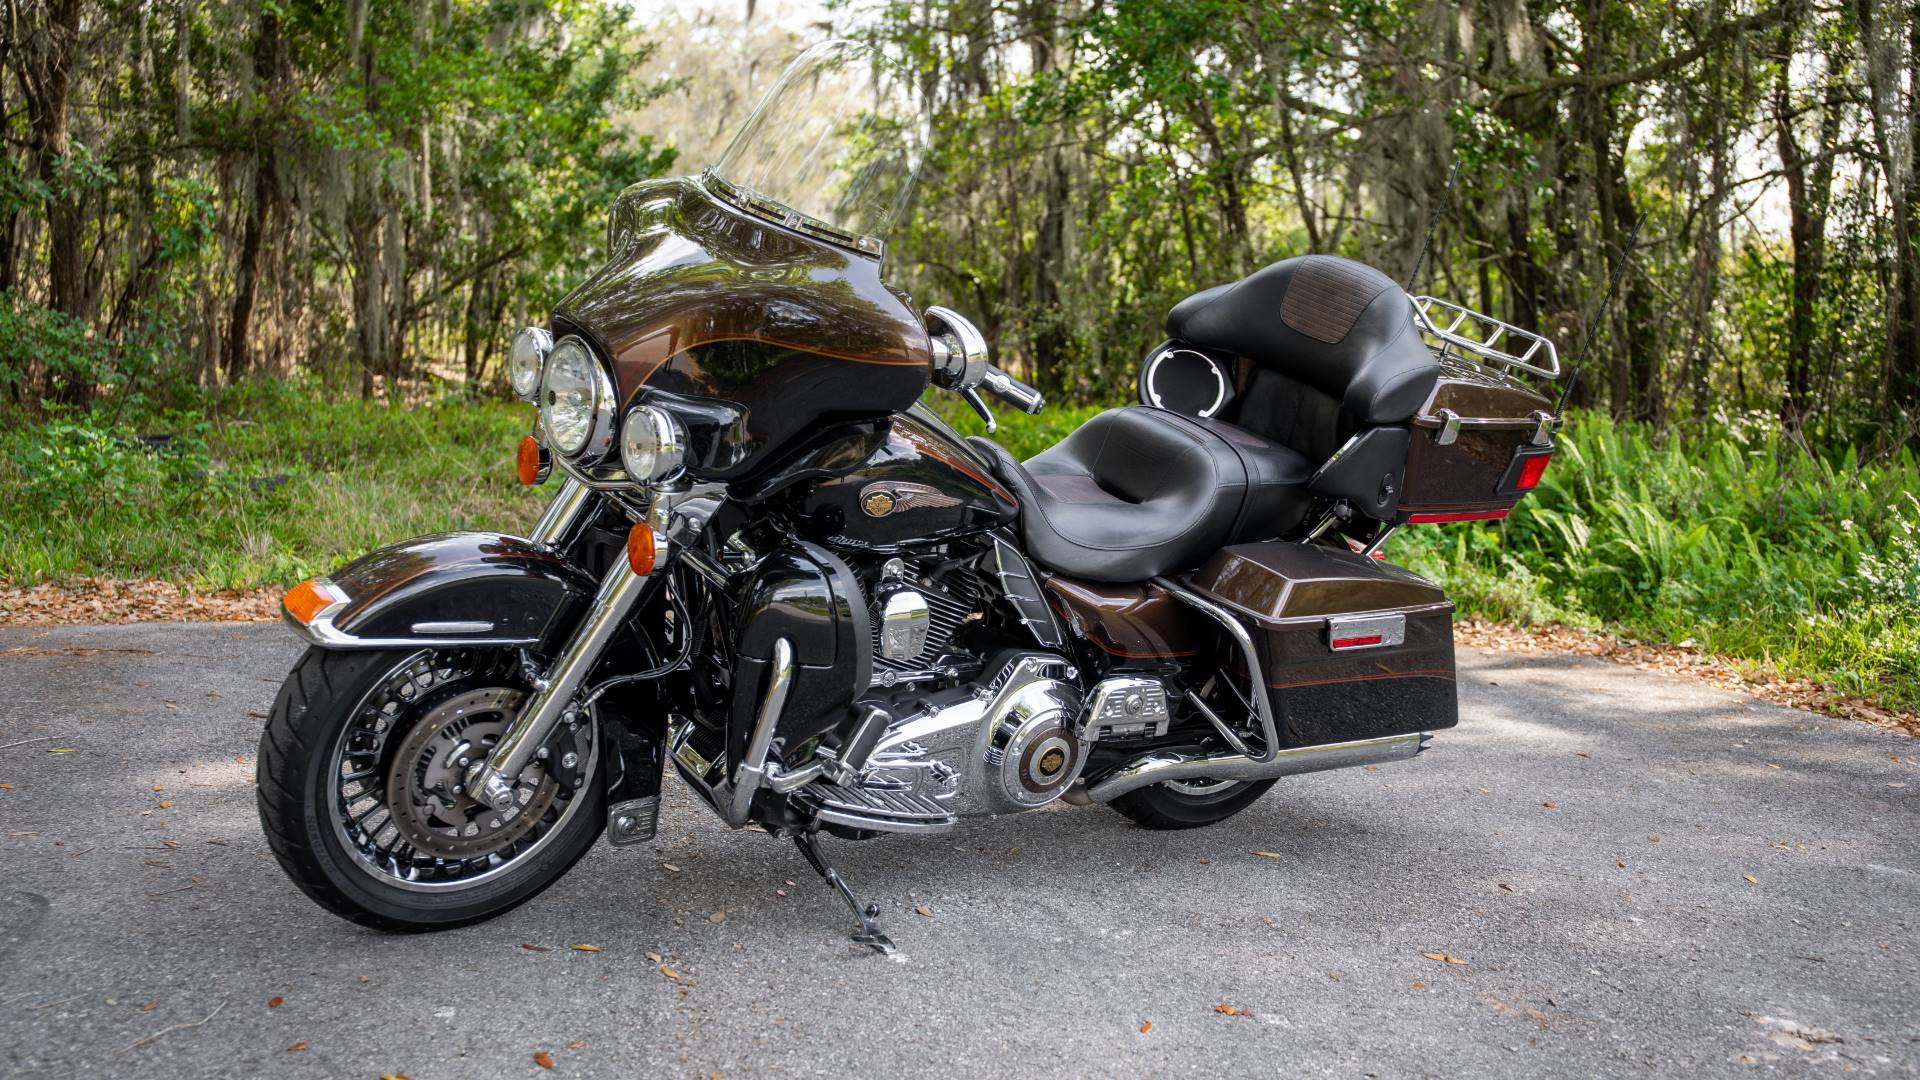 2013 Harley-Davidson Electra Glide® Ultra Limited 110th Anniversary Edition in Lakeland, Florida - Photo 31